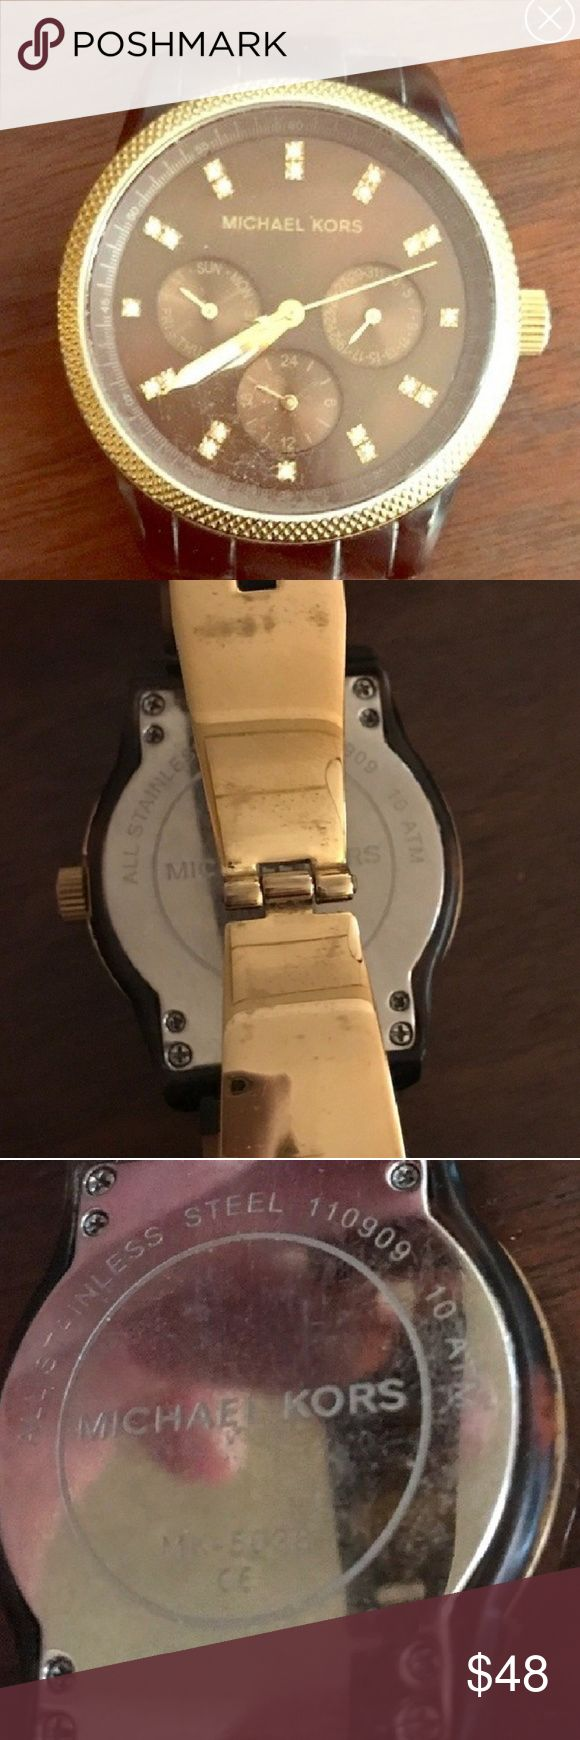 Authentic Michael Kors Watch Authentic Michael Kors Chronograph Watch with tortoise links n gold trim around the face. This watch has been well used and shows it. Batteries were replaced within the last six months and is running. Comes with links, care manual and box. Michael Kors Accessories Watches